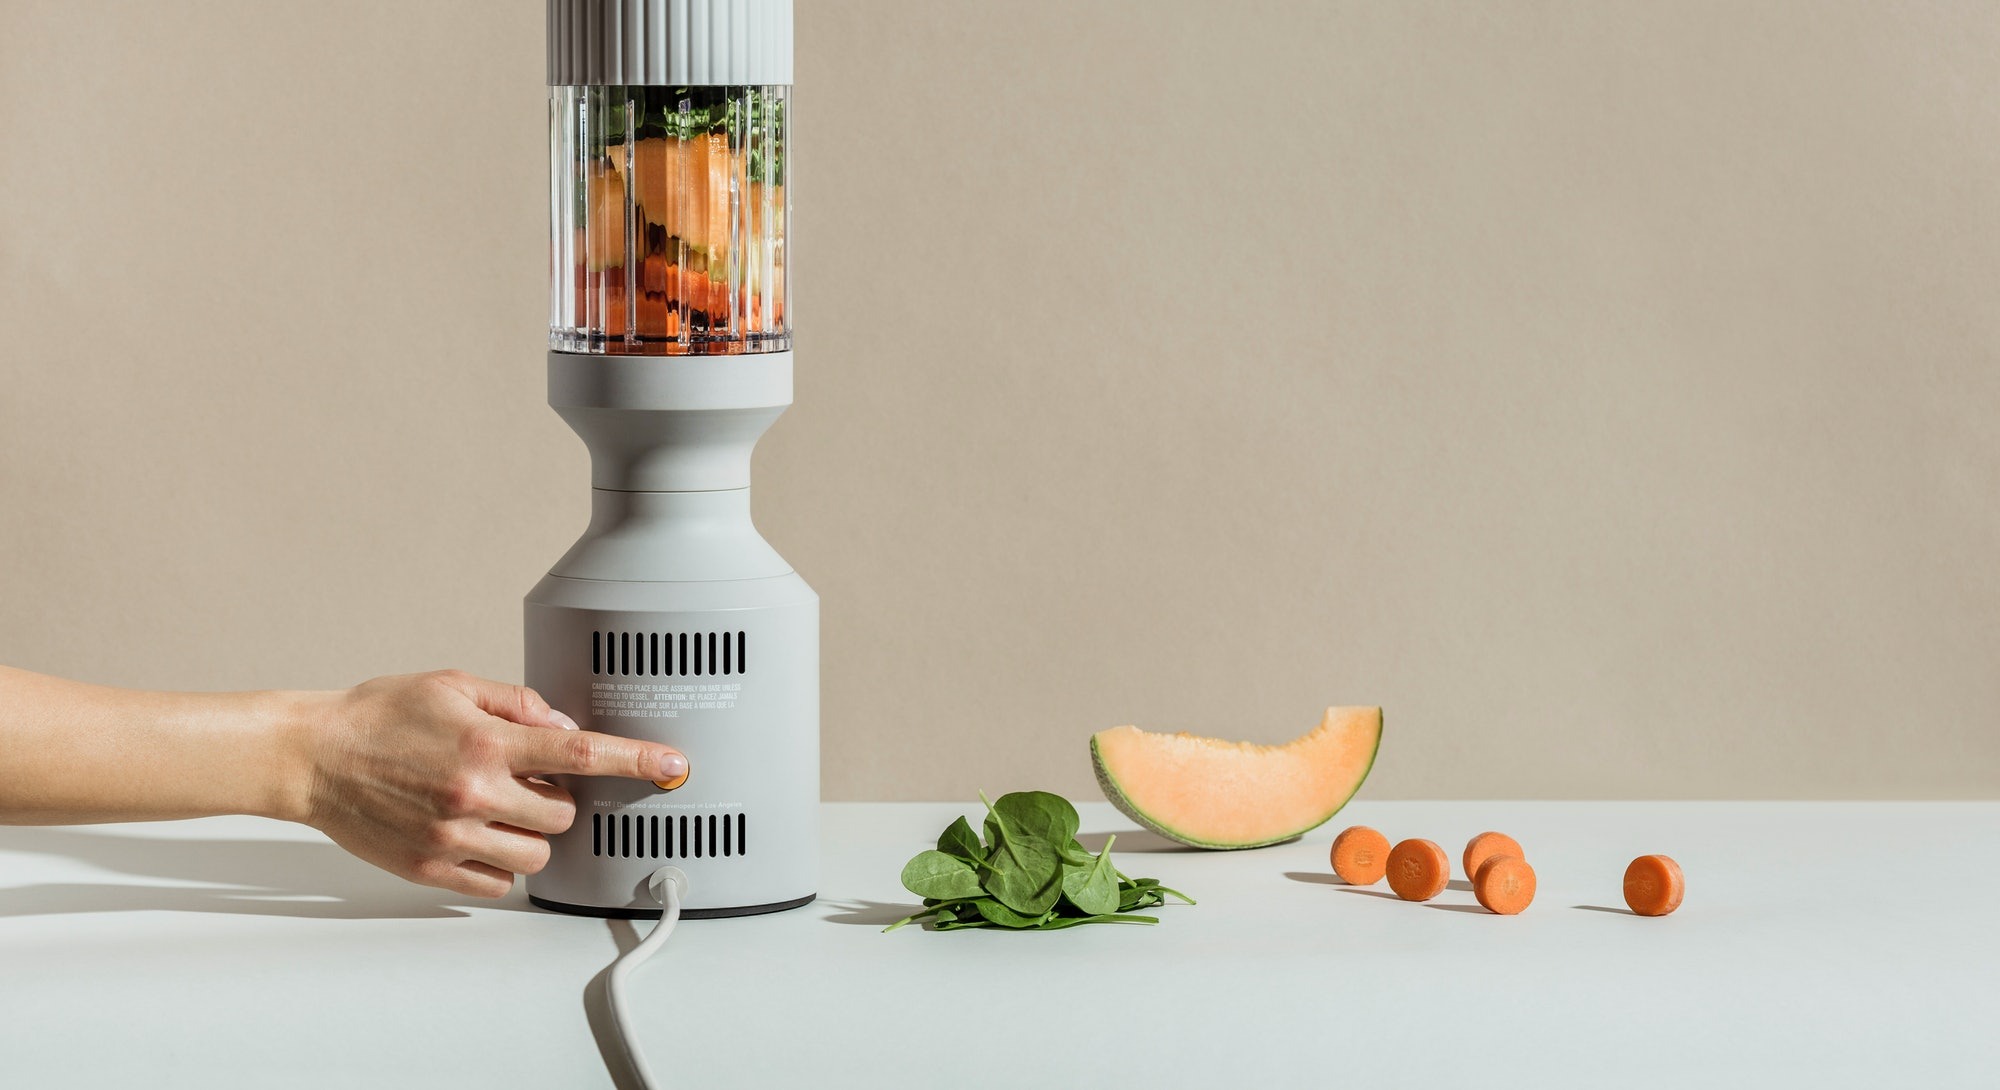 A B10 blender is seen with papaya, greens, and other fruits inside the blending glass.